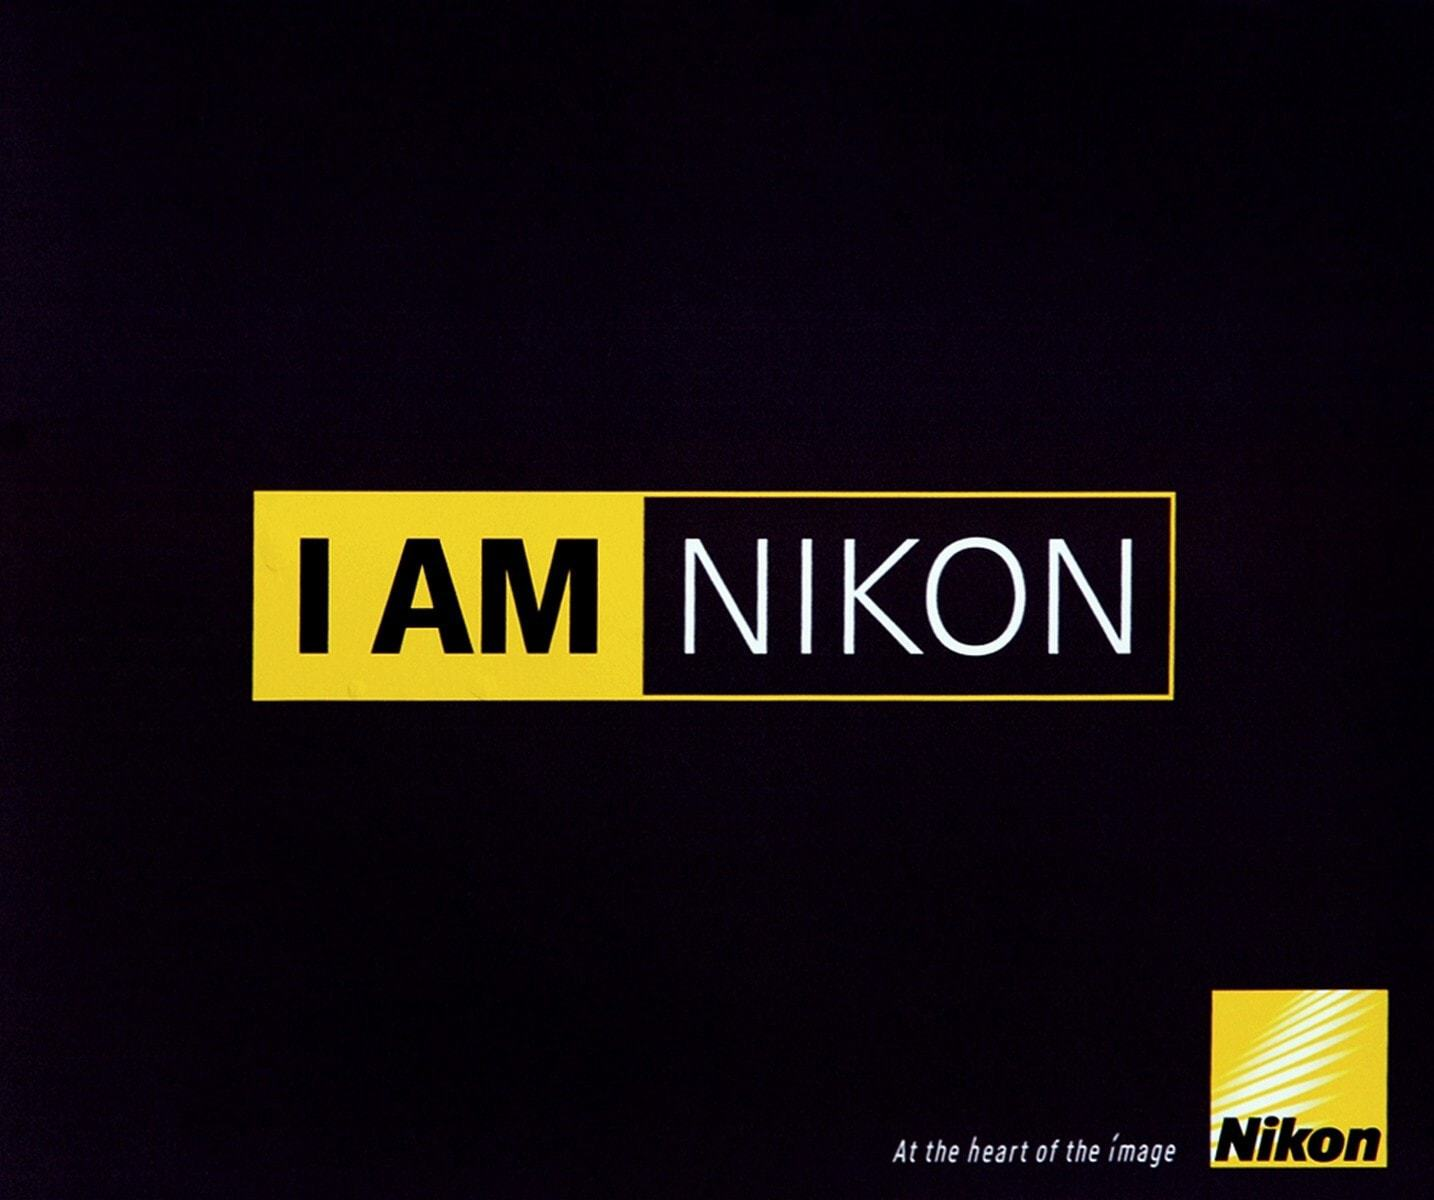 Marketing Strategy of Nikon - Nikon Marketing Strategy